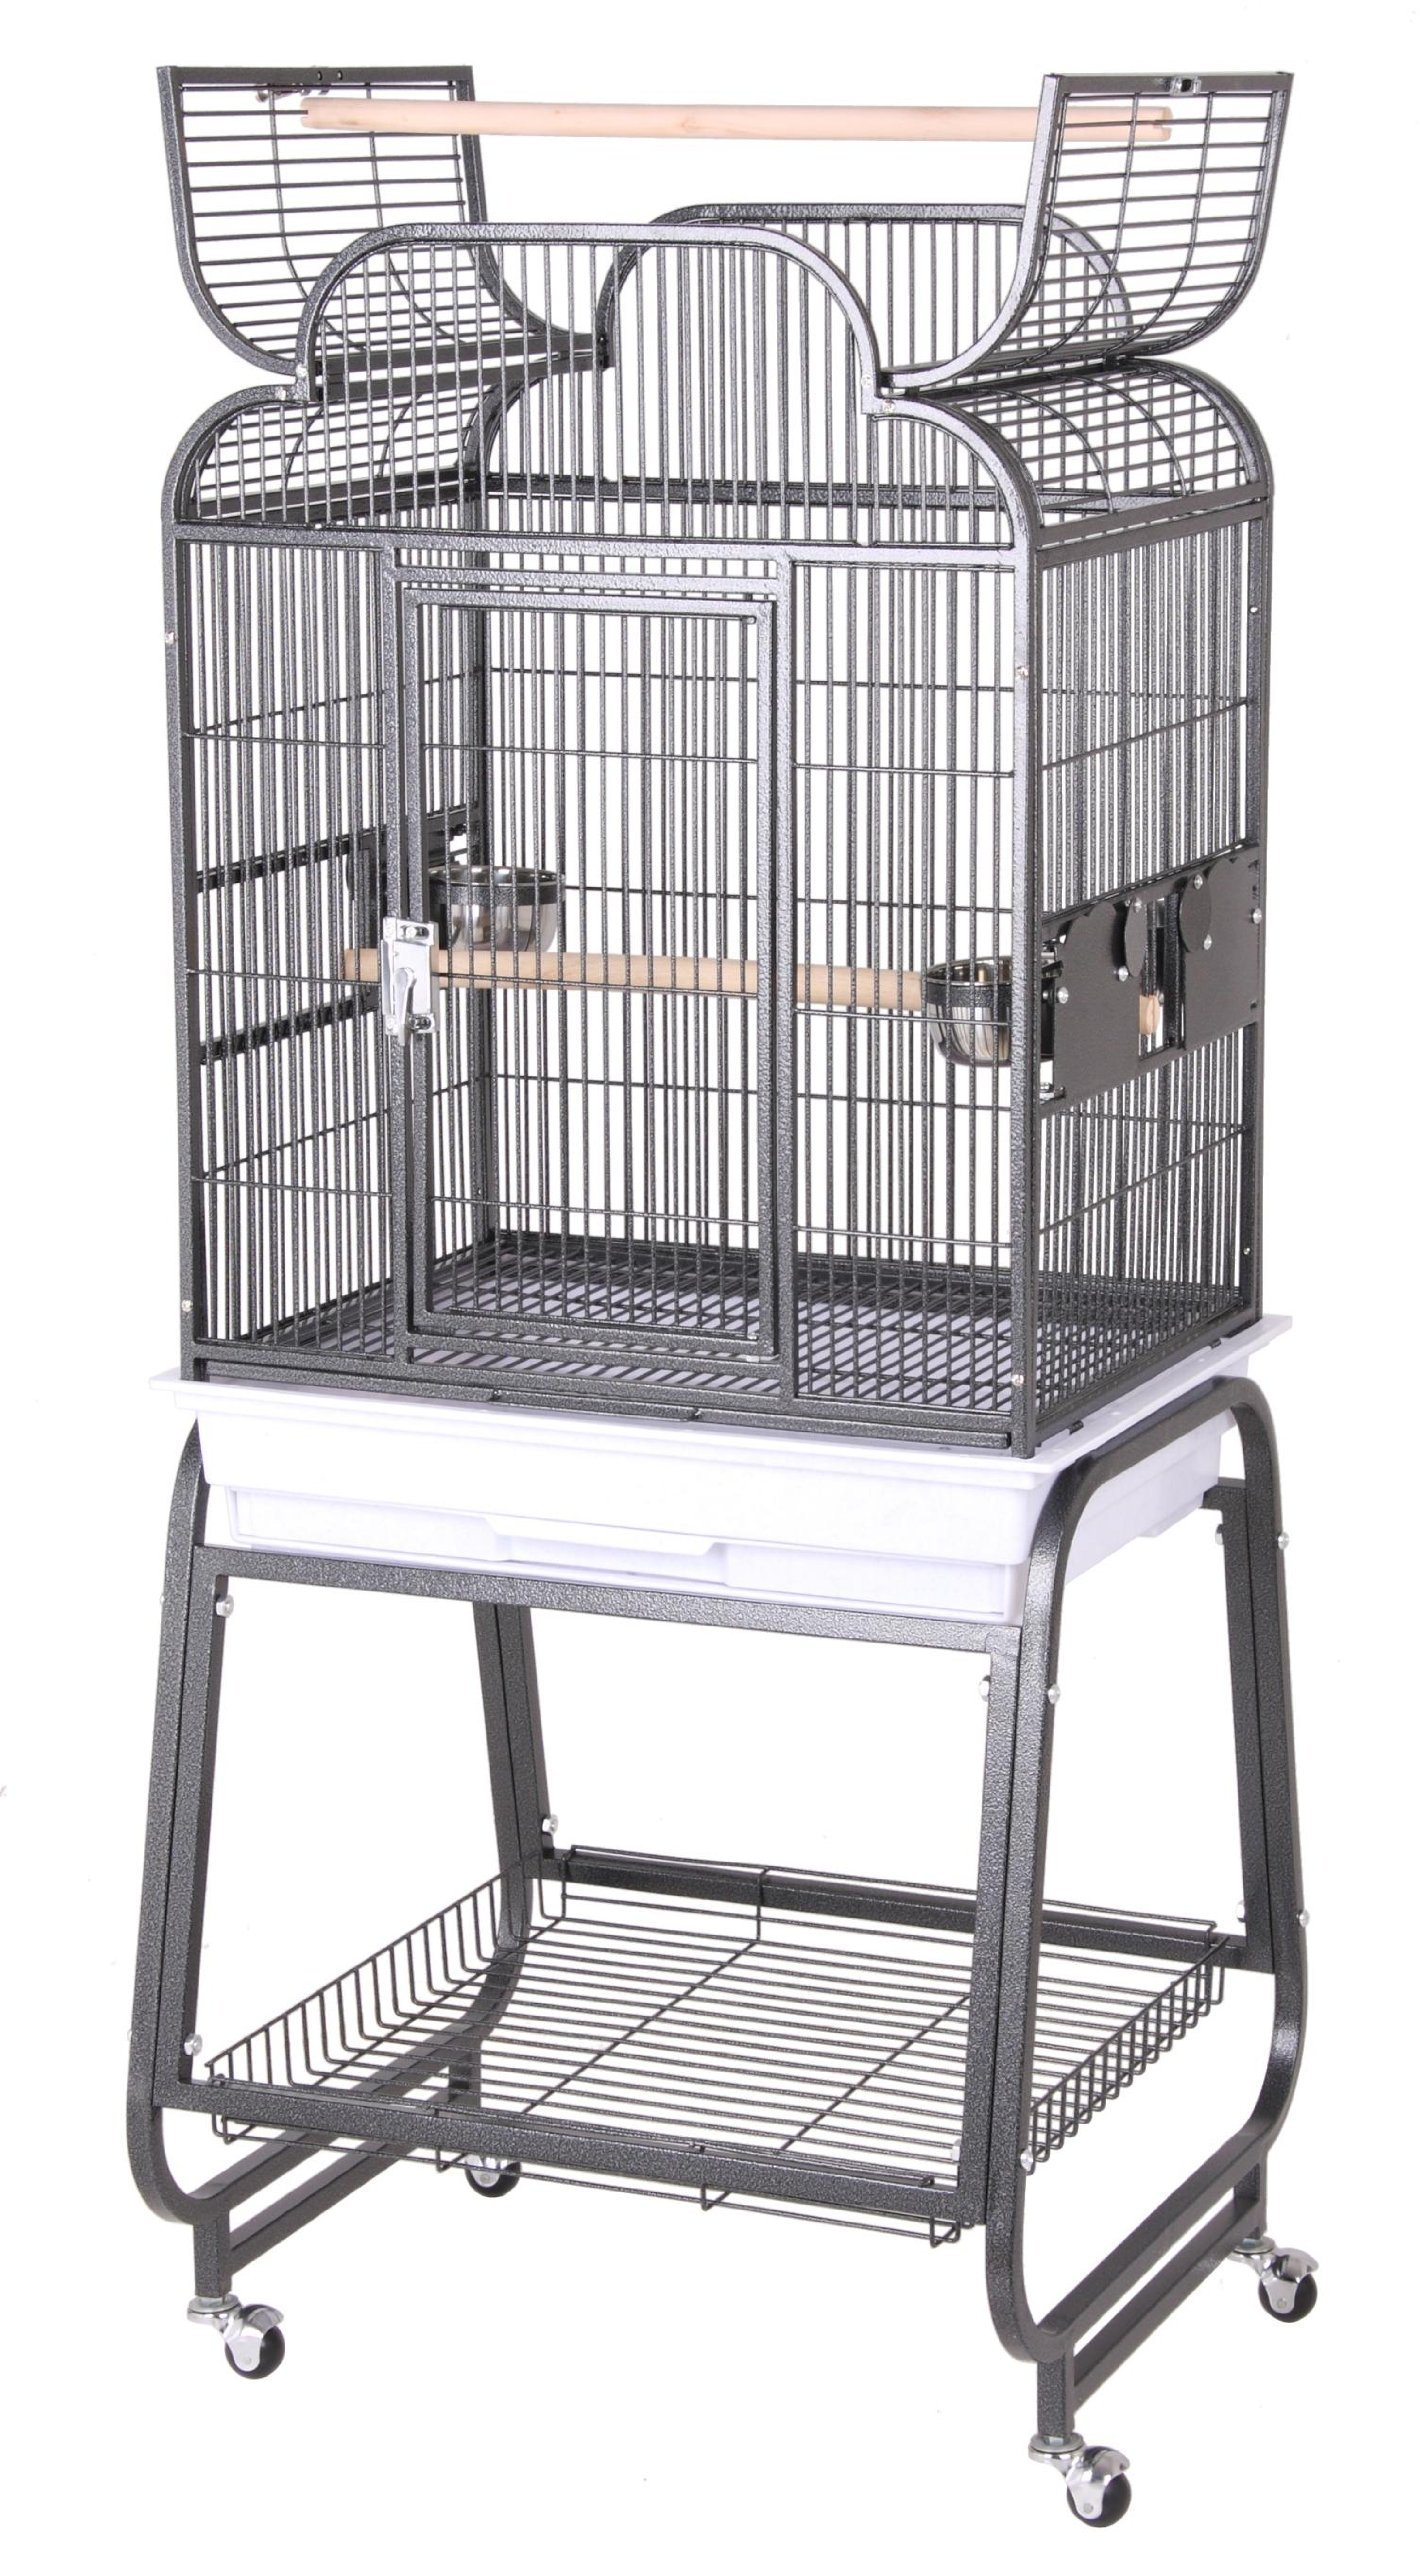 HQ's Opening Scroll Parrot Cage with Cart Stand, Small, Platinum, 1 Per Box by Hq